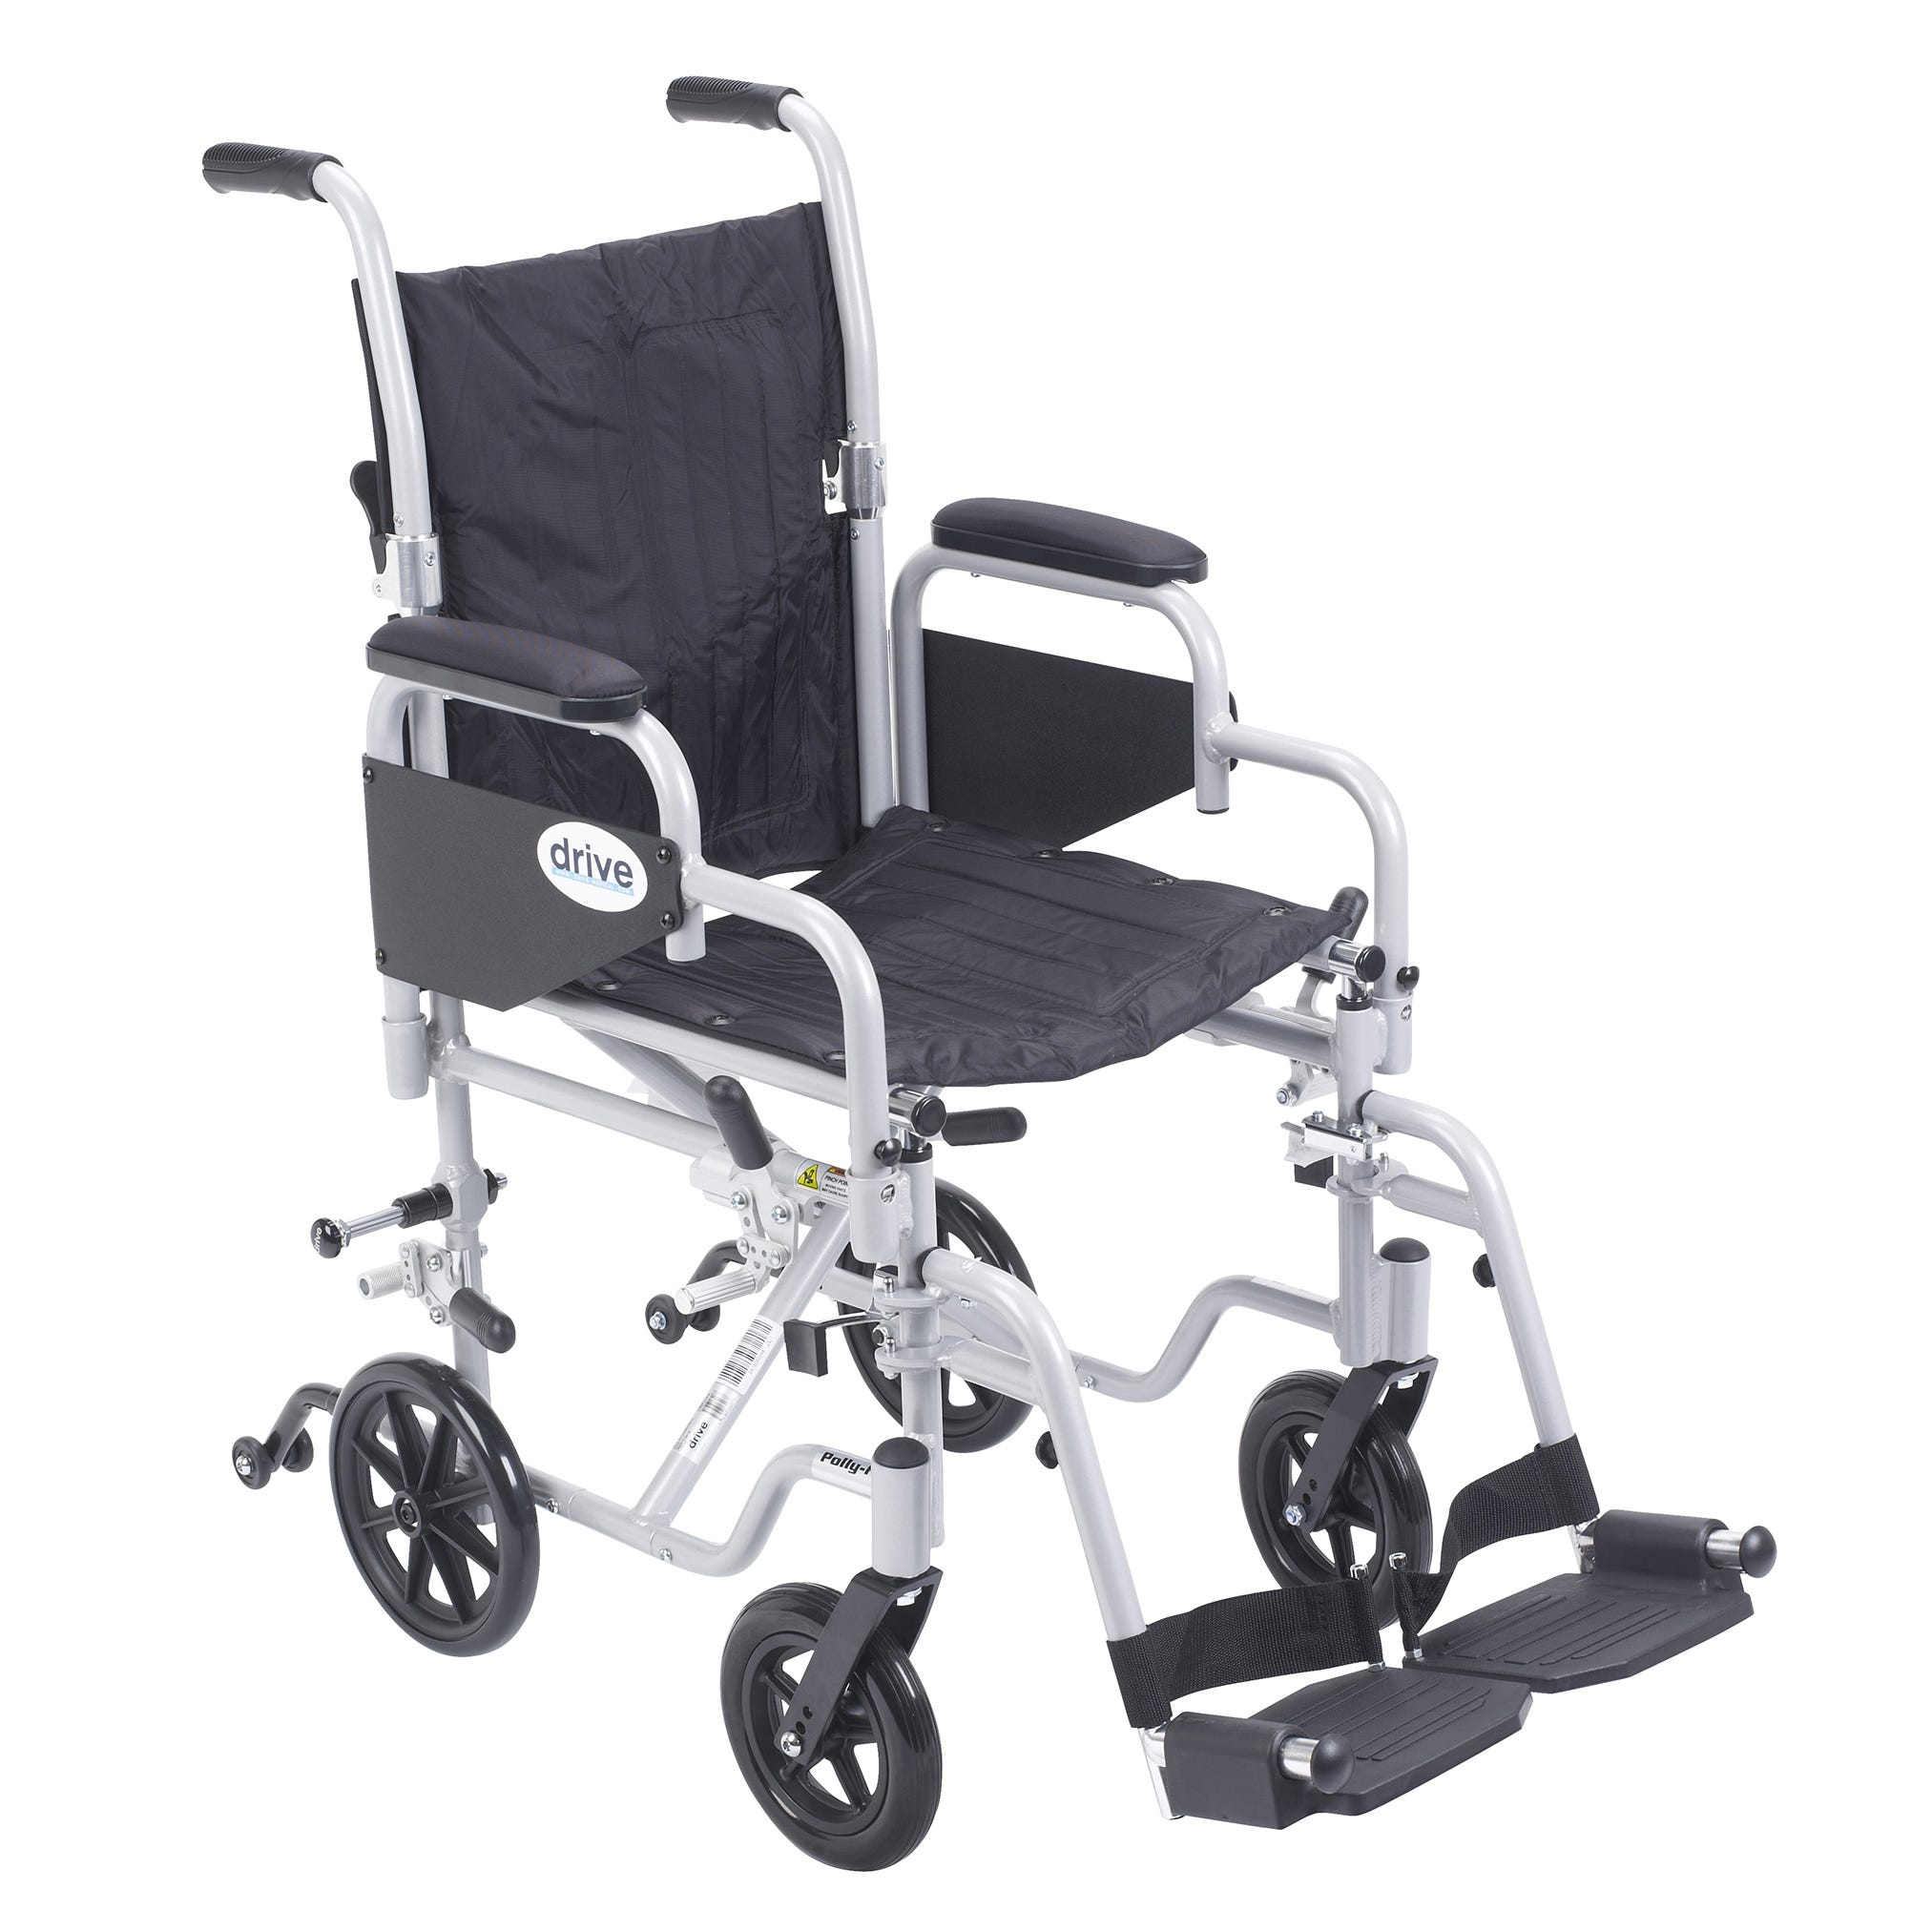 Drive Poly Fly Light Weight Transport Chair Wheelcha.  sc 1 st  CME Corp & Transport Chairs - Wheelchairs - Patient Moving Aids - CME formerly ...